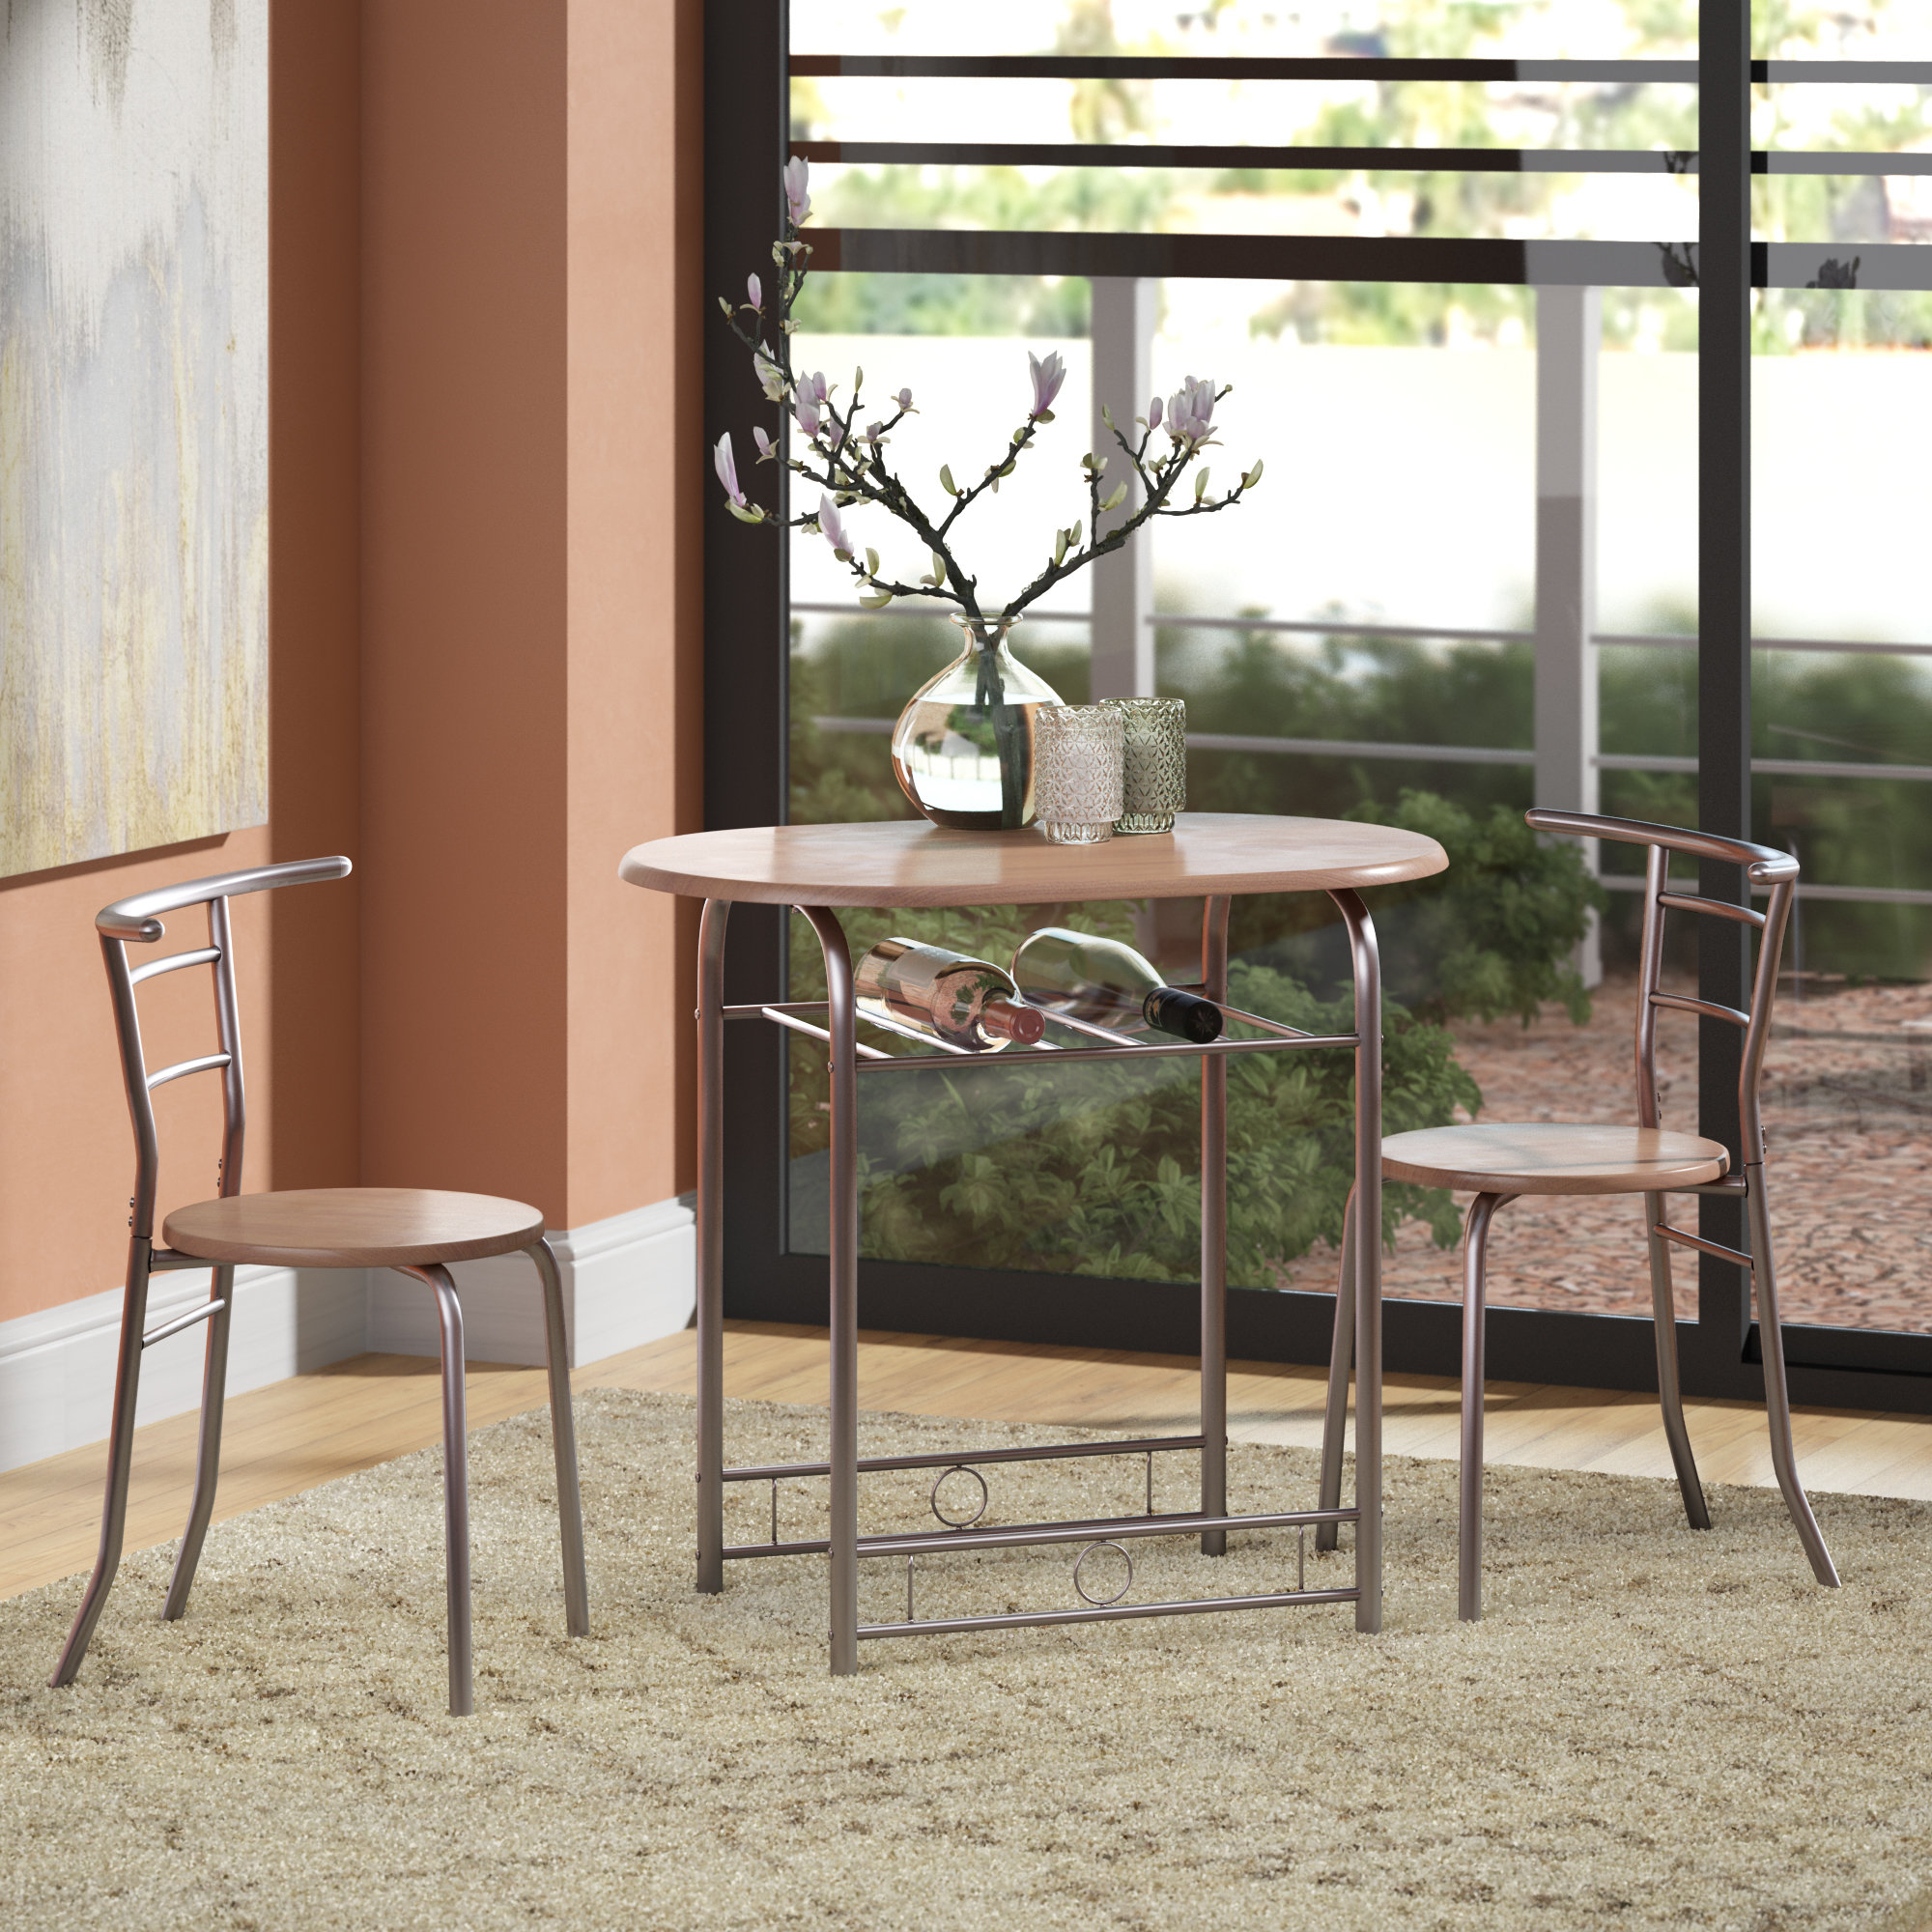 Shingadia Bistro 3 Piece Breakfast Nook Dining Set Within Recent Smyrna 3 Piece Dining Sets (View 19 of 20)